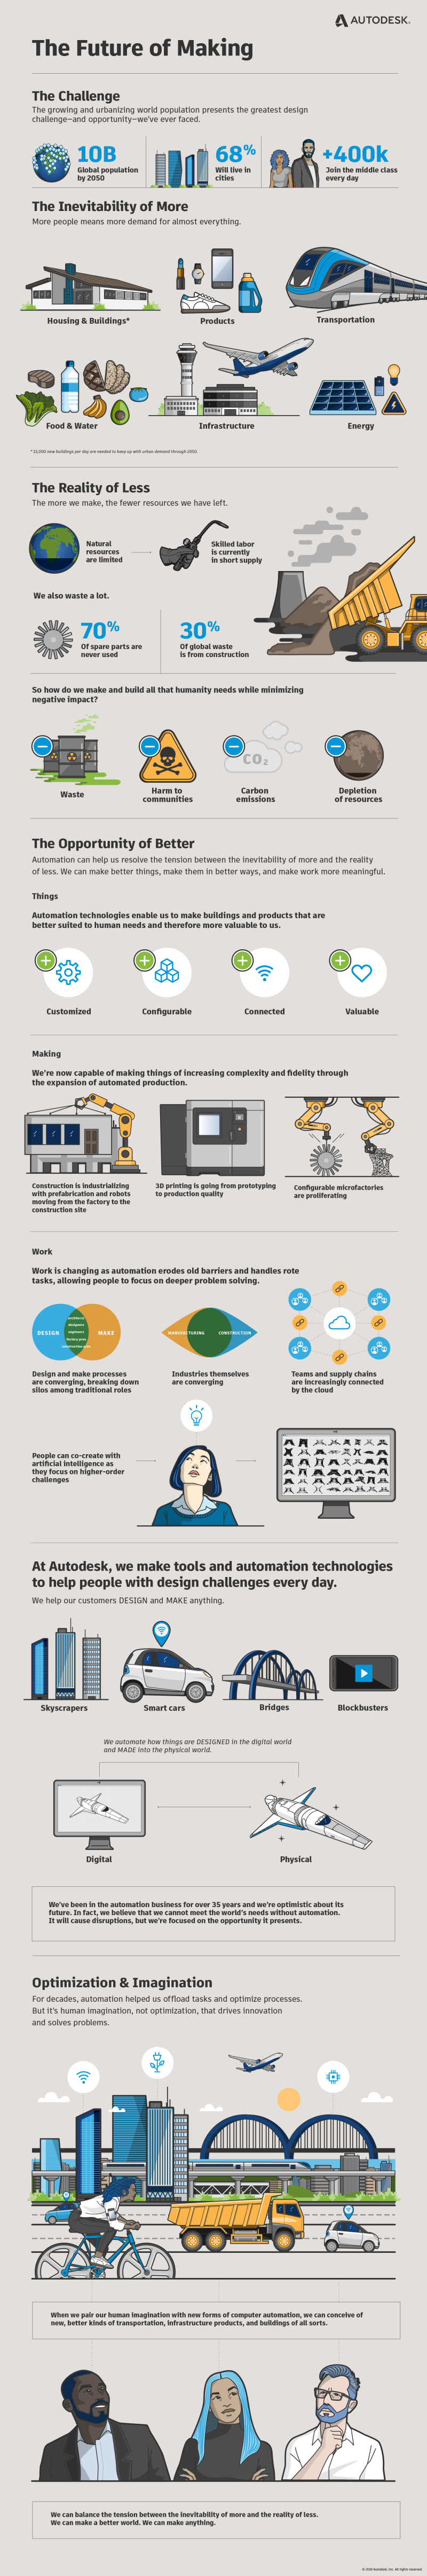 Future-of-making-infographic-vertical-en